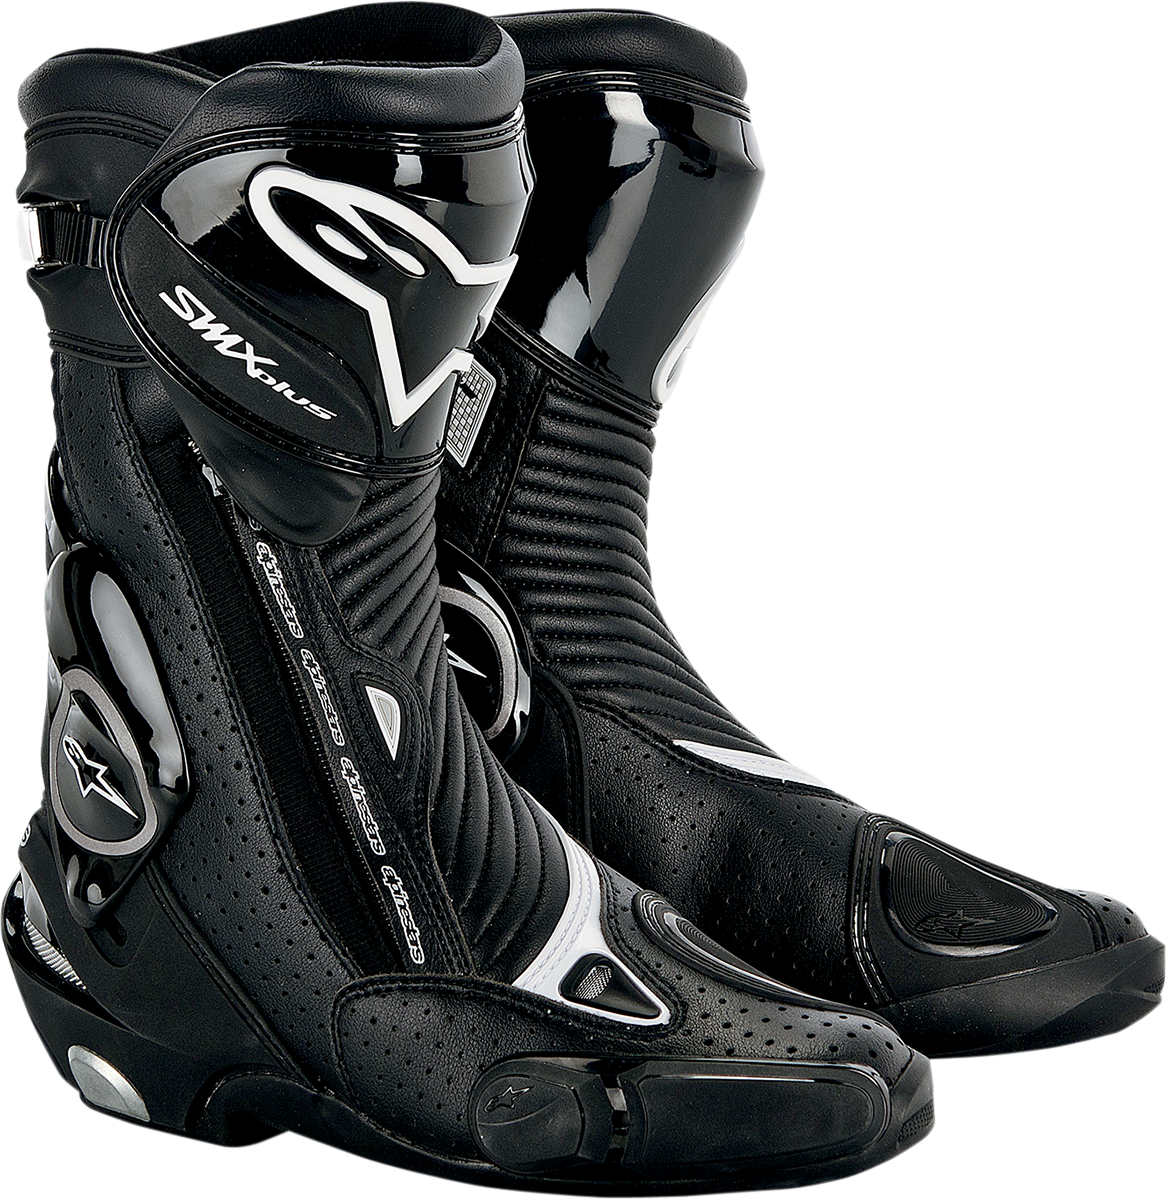 Alpinestars Smx Plus Vented Motorcycle Boot Black